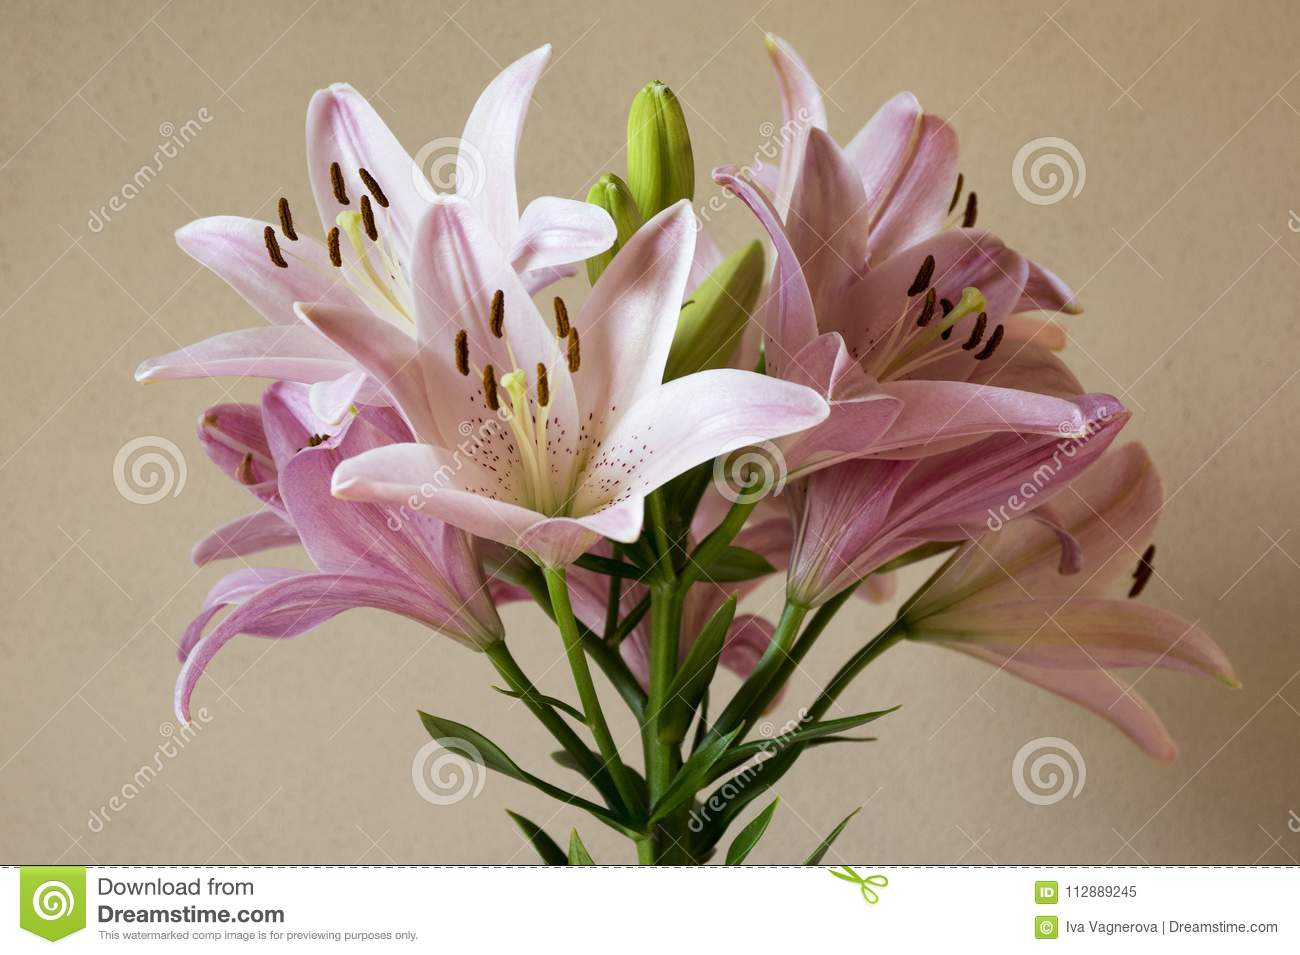 Asiatic hybrids lilium in bloom light pink flower heads stock image asiatic hybrids lilium in bloom light pink flower heads izmirmasajfo